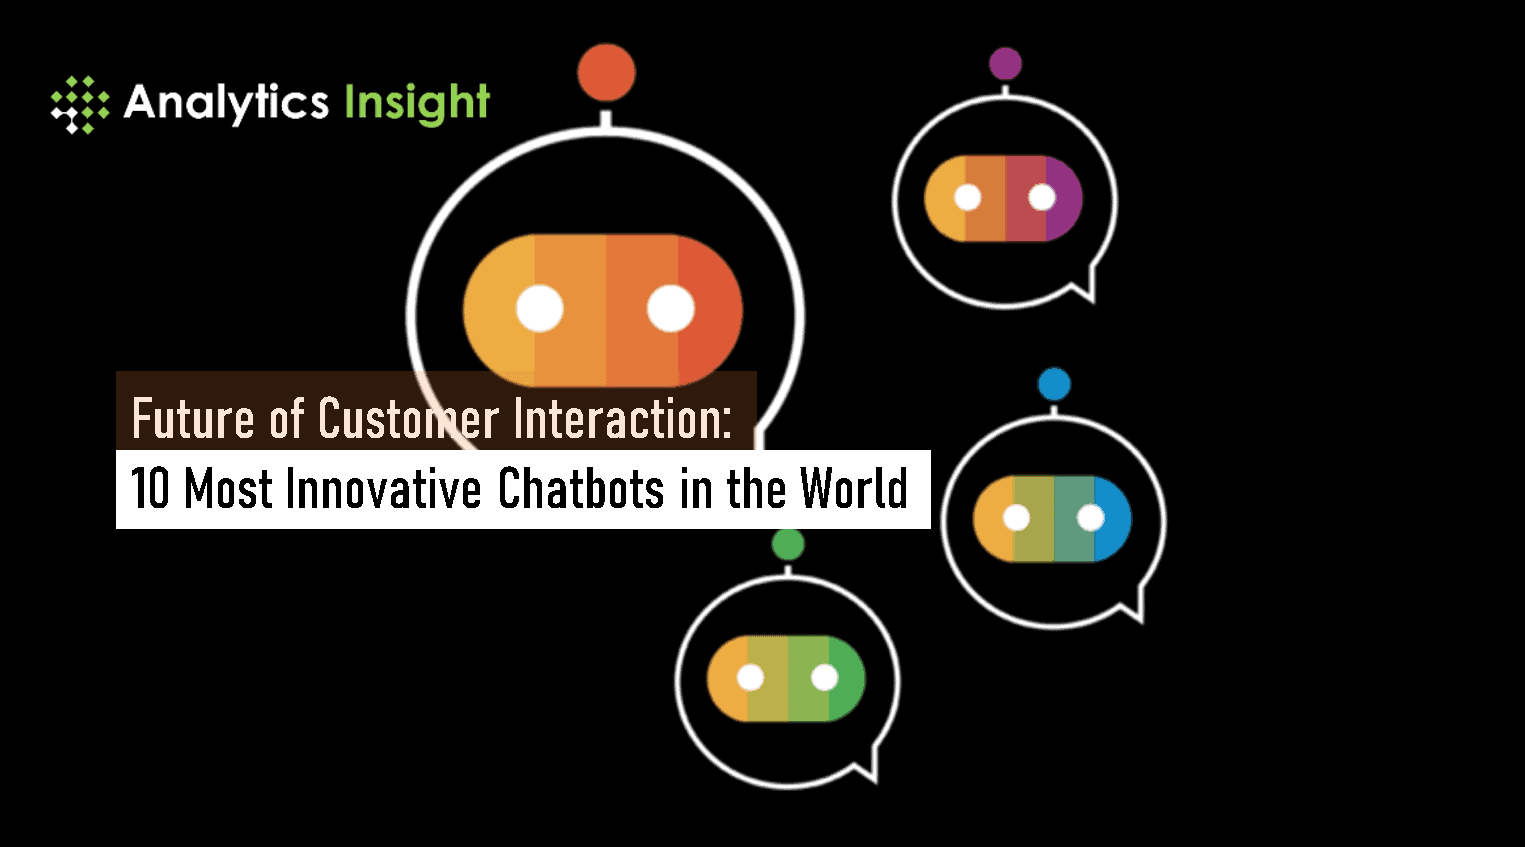 Chatbots in the World